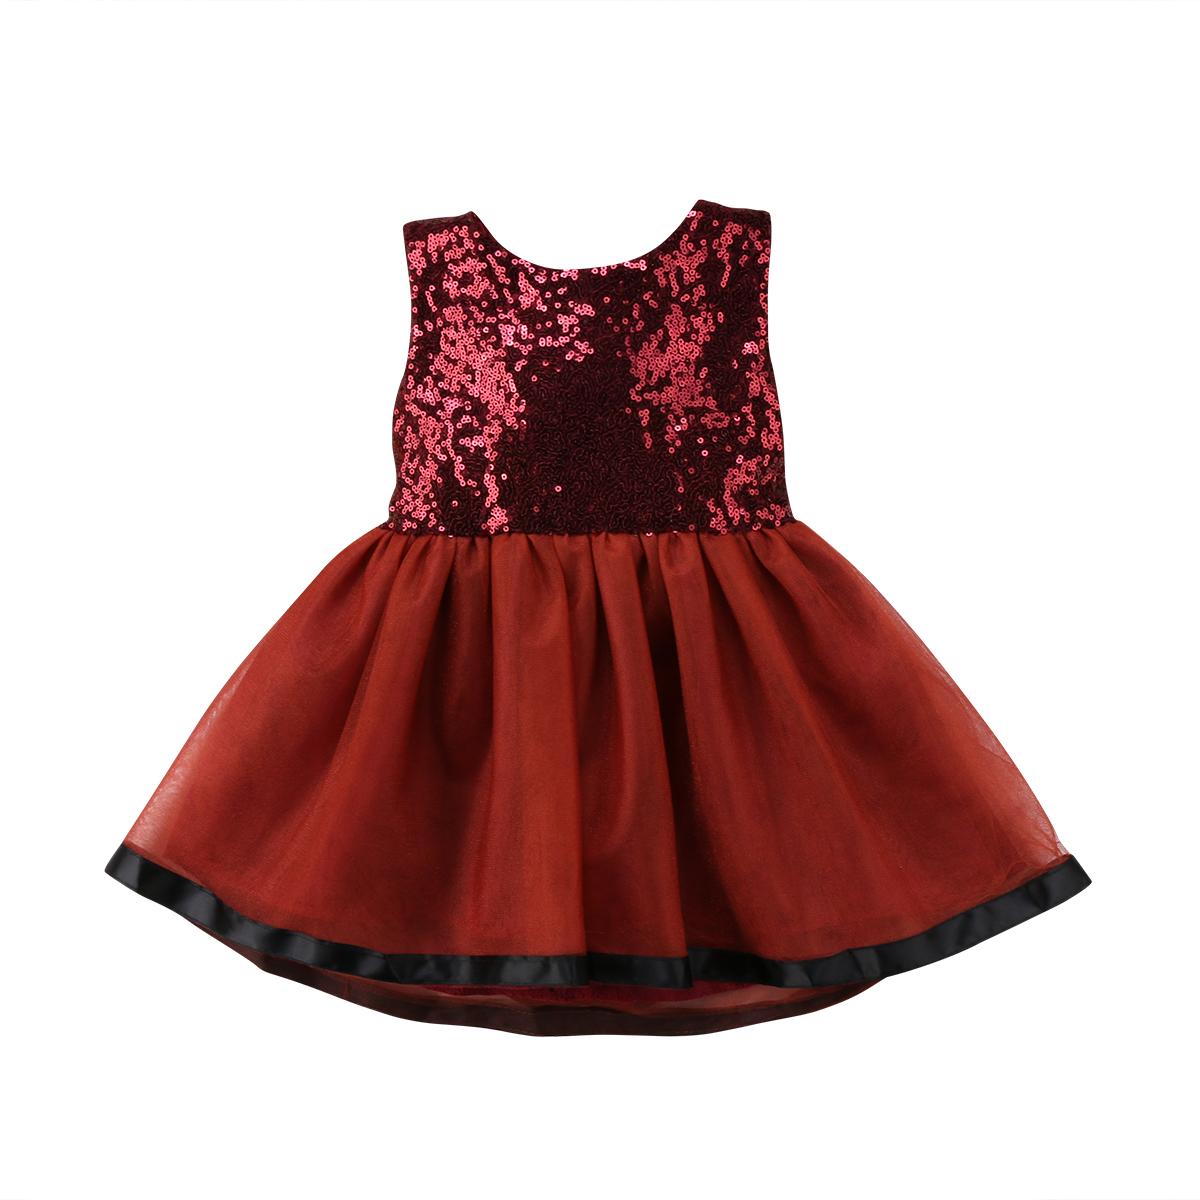 Toddler Baby Girl Princess Wedding Lace Tutu Dress Clothing Kids Party Sequins Sleeveless Prom Summer Dresses Vestidos Clothes